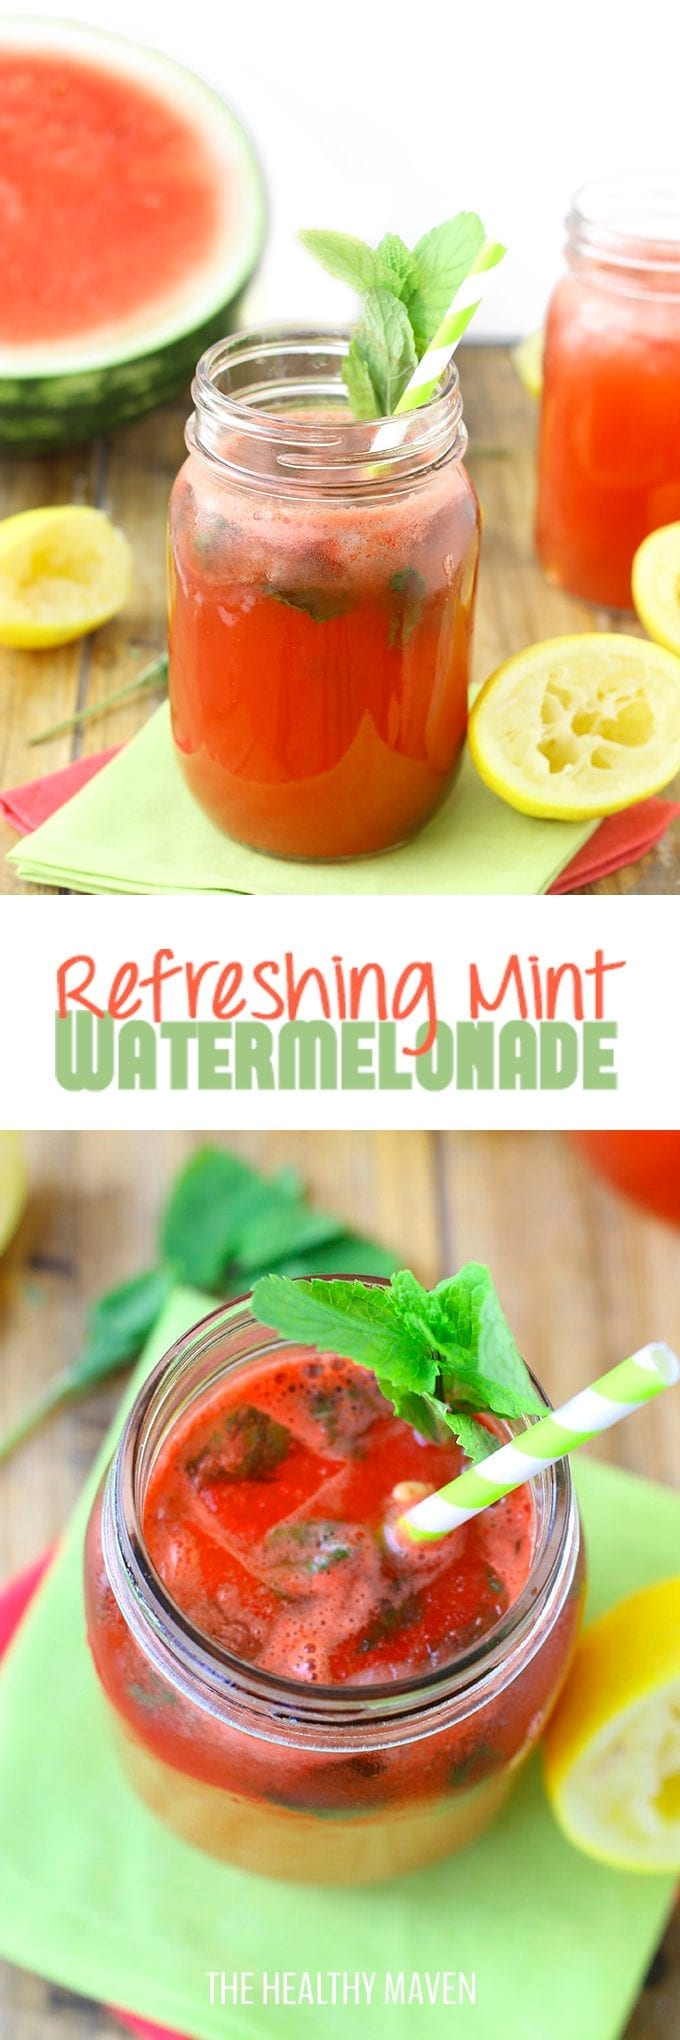 Watermelon meets lemonade in this Refreshing Mint Watermelonade. It's a healthy and delicious drink recipe on a hot summer day. Sweetened naturally with fruit and a touch of honey!